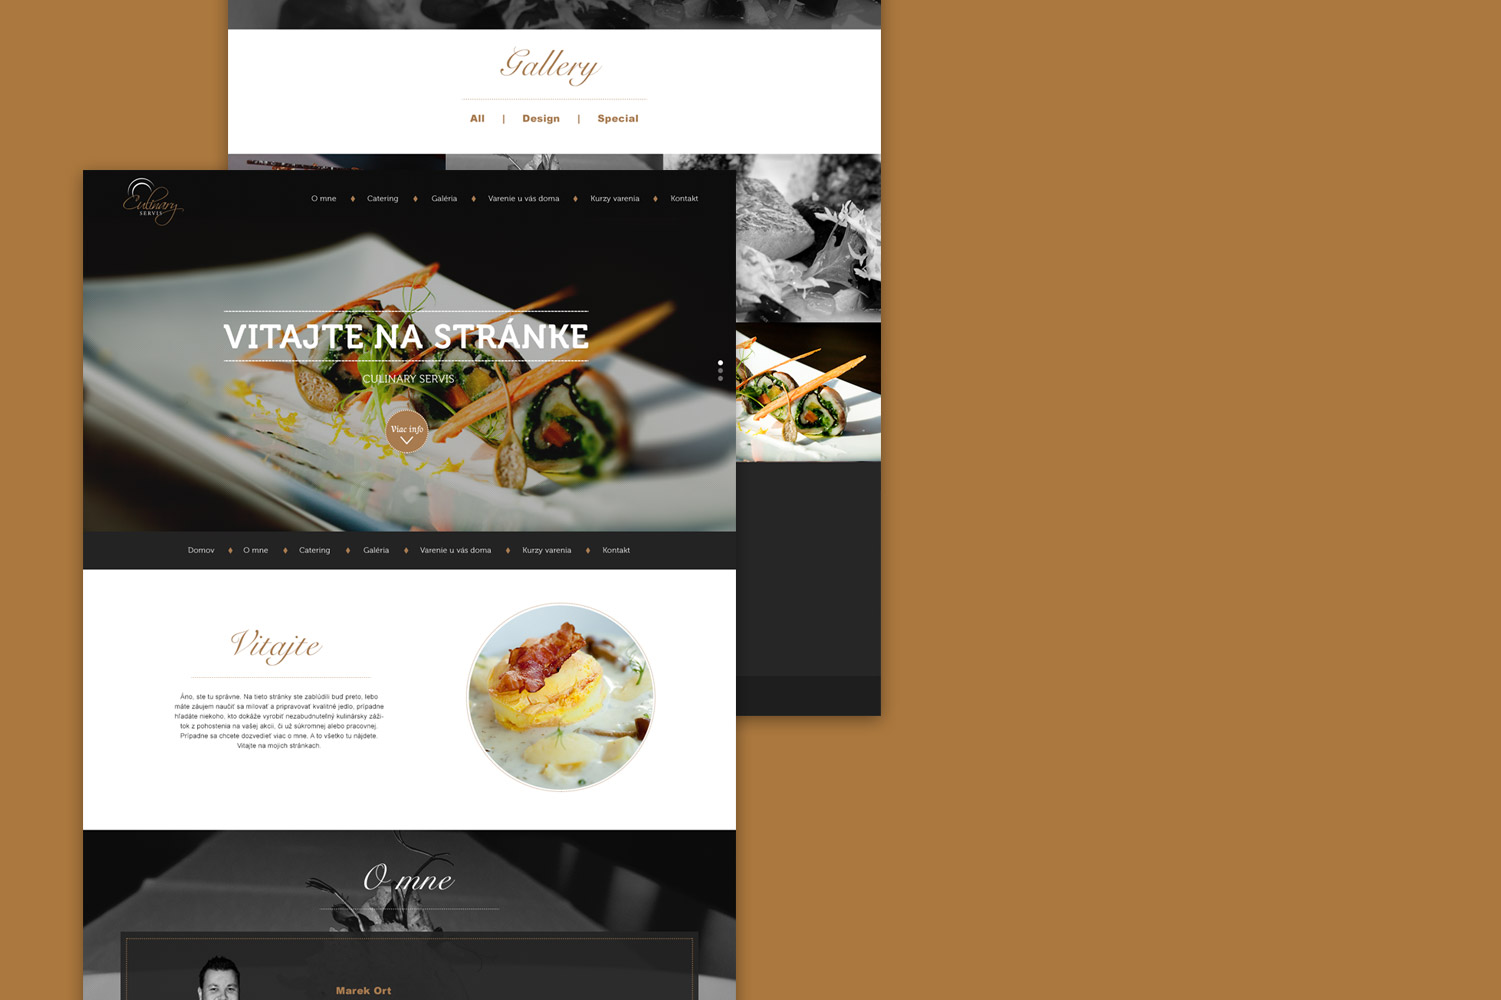 Culinary Servis, web design and business cards image